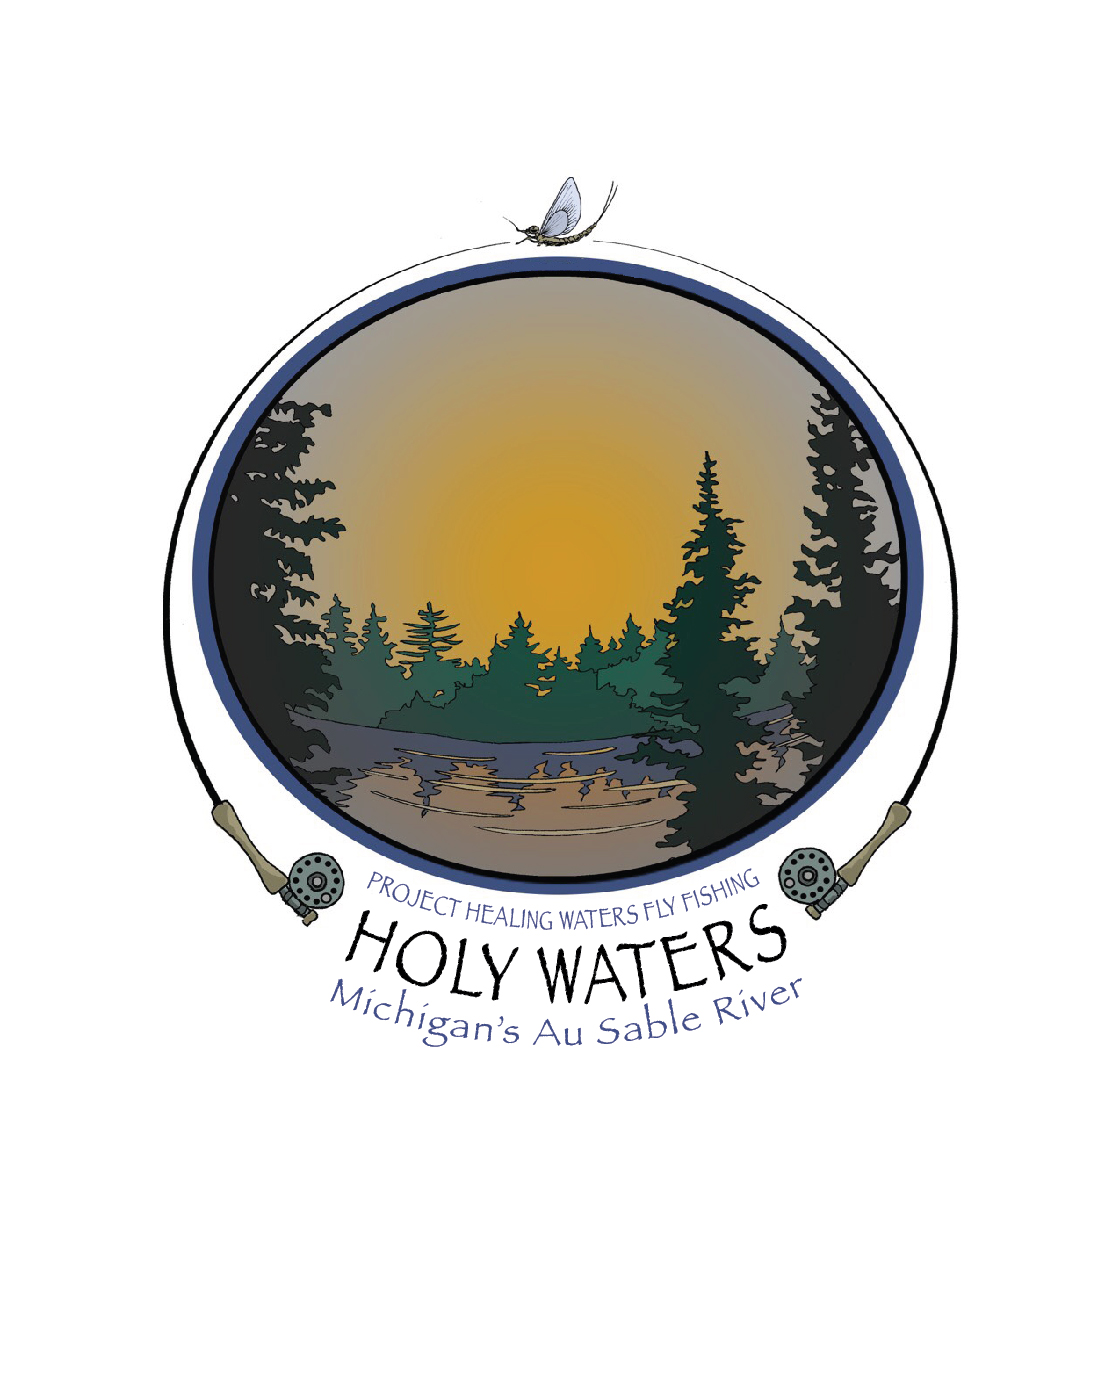 The Inaugural 'Holy Waters Tournament' set for August 26, 2017